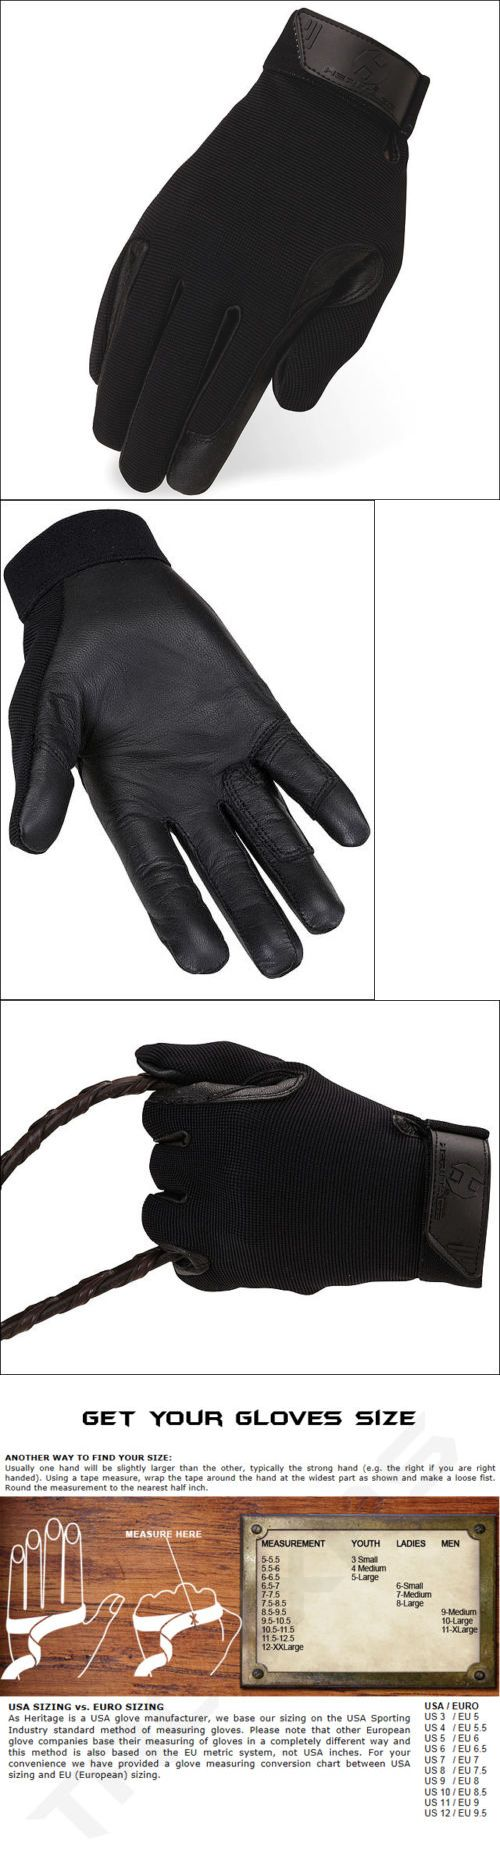 Ladies leather horse riding gloves - Riding Gloves 95104 12 Size Heritage Tackified Performance Riding Gloves Horse Equestrians Black